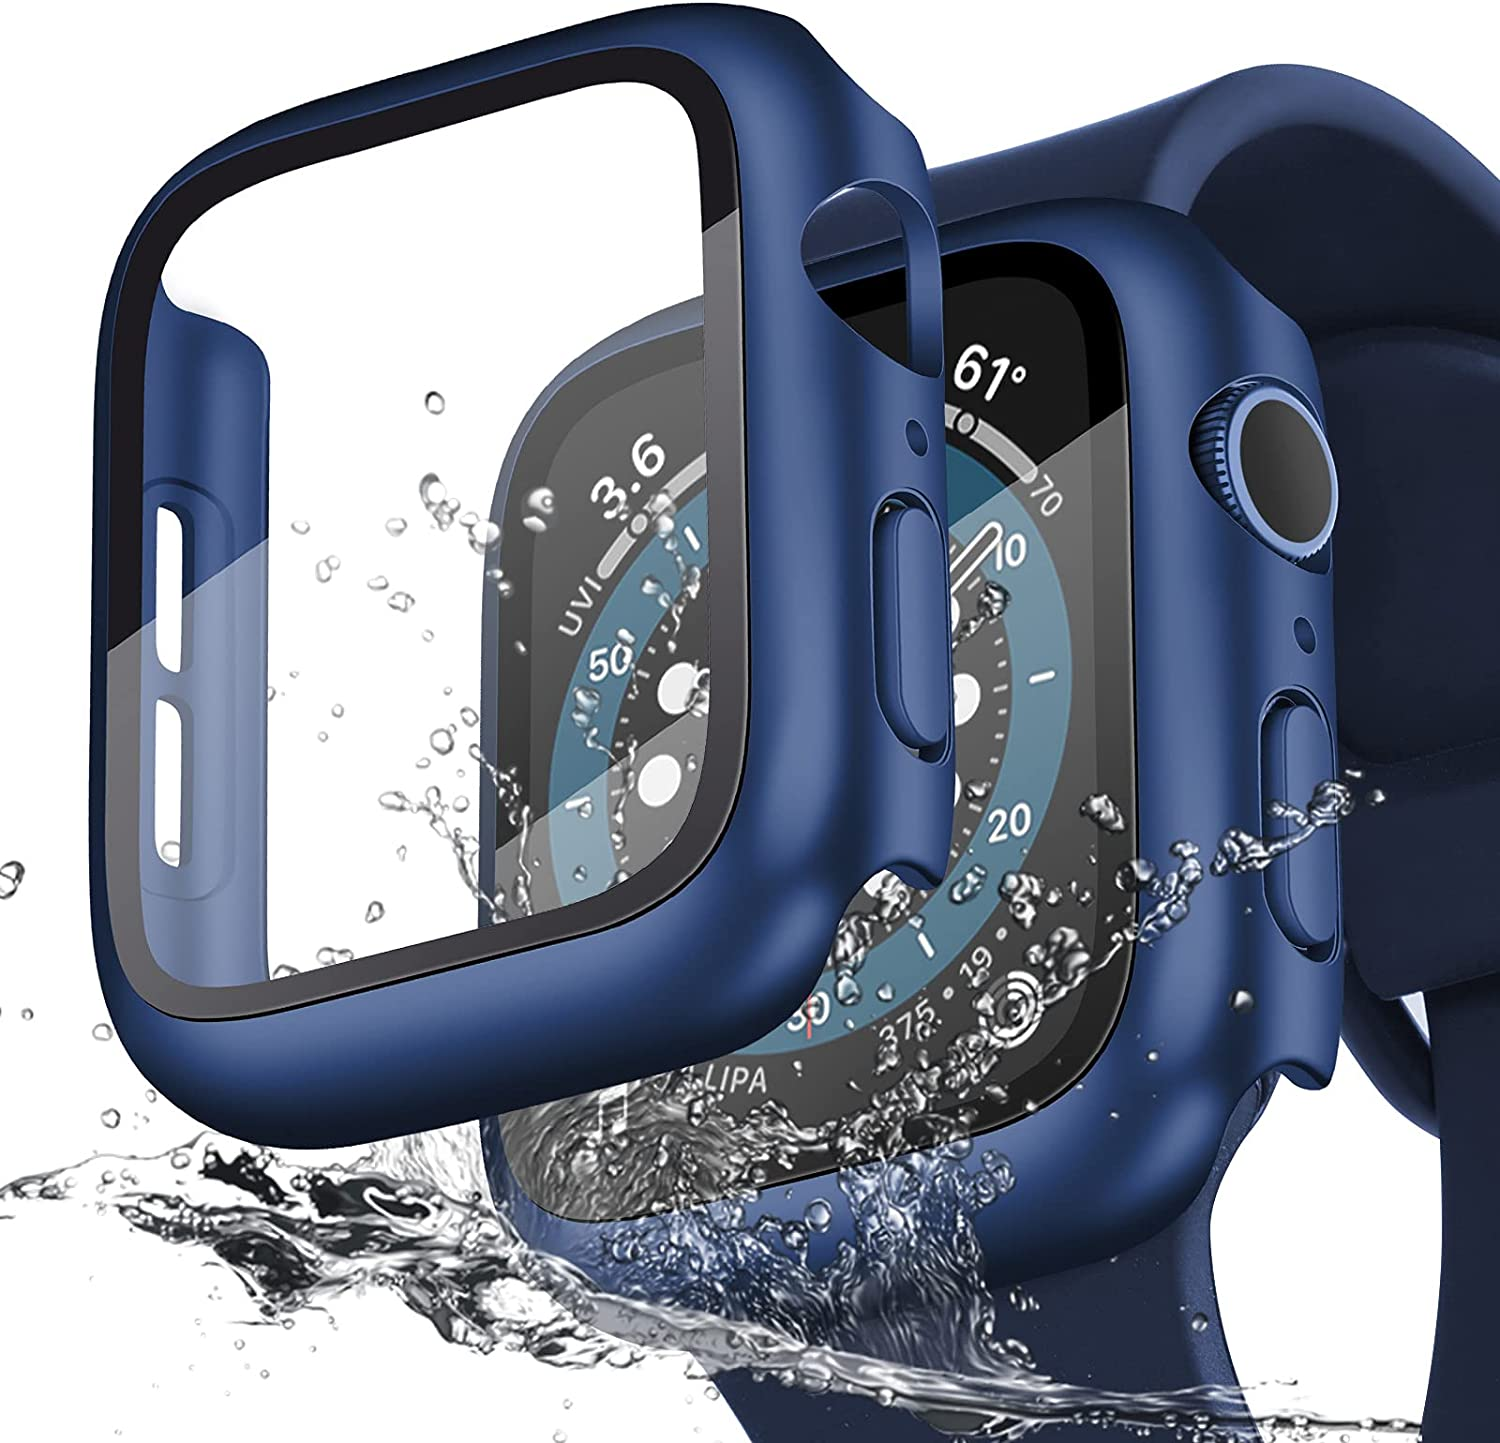 KADES Compatible for Apple Watch Case Waterproof 38mm 40mm 42mm 44mm, Tempered Glass Screen Protector Case Compatible with Apple Watch SE Series 3/4/5/6 (40mm, Blue)